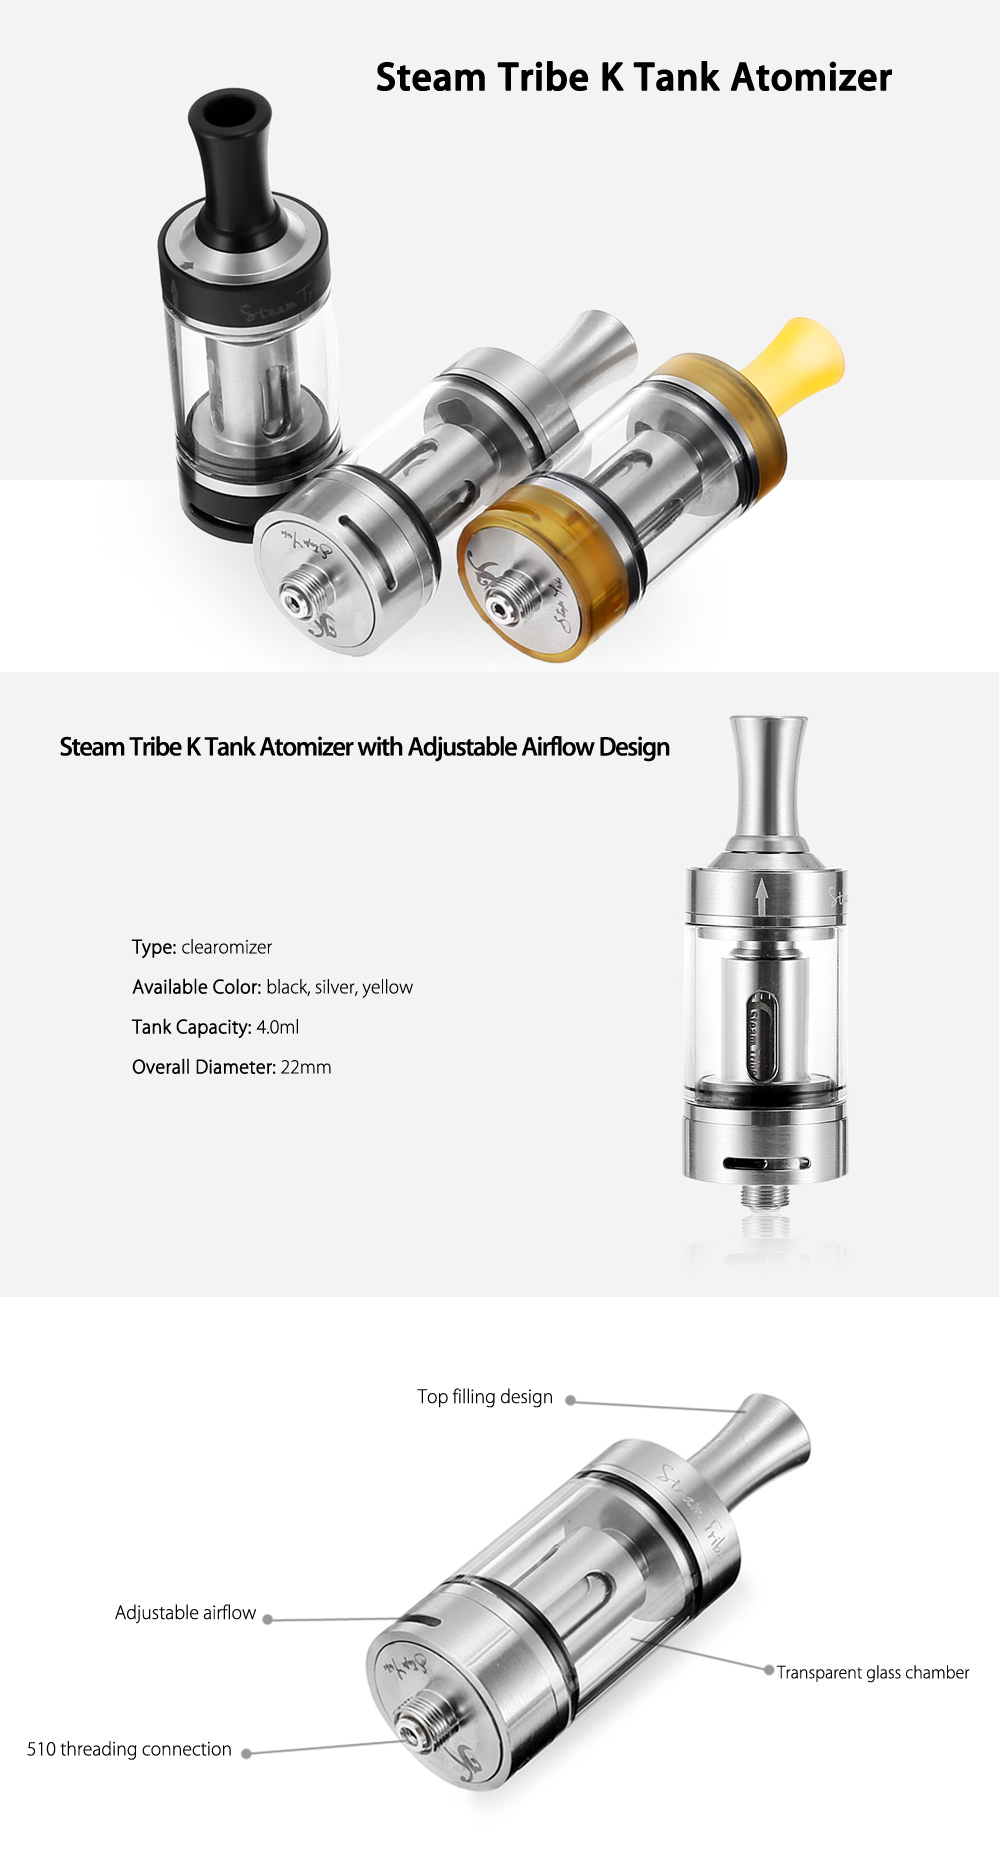 Steam Tribe K Tank Atomizer Supporting Top Filling / PEEK Insulation E Cigarette Clearomizer